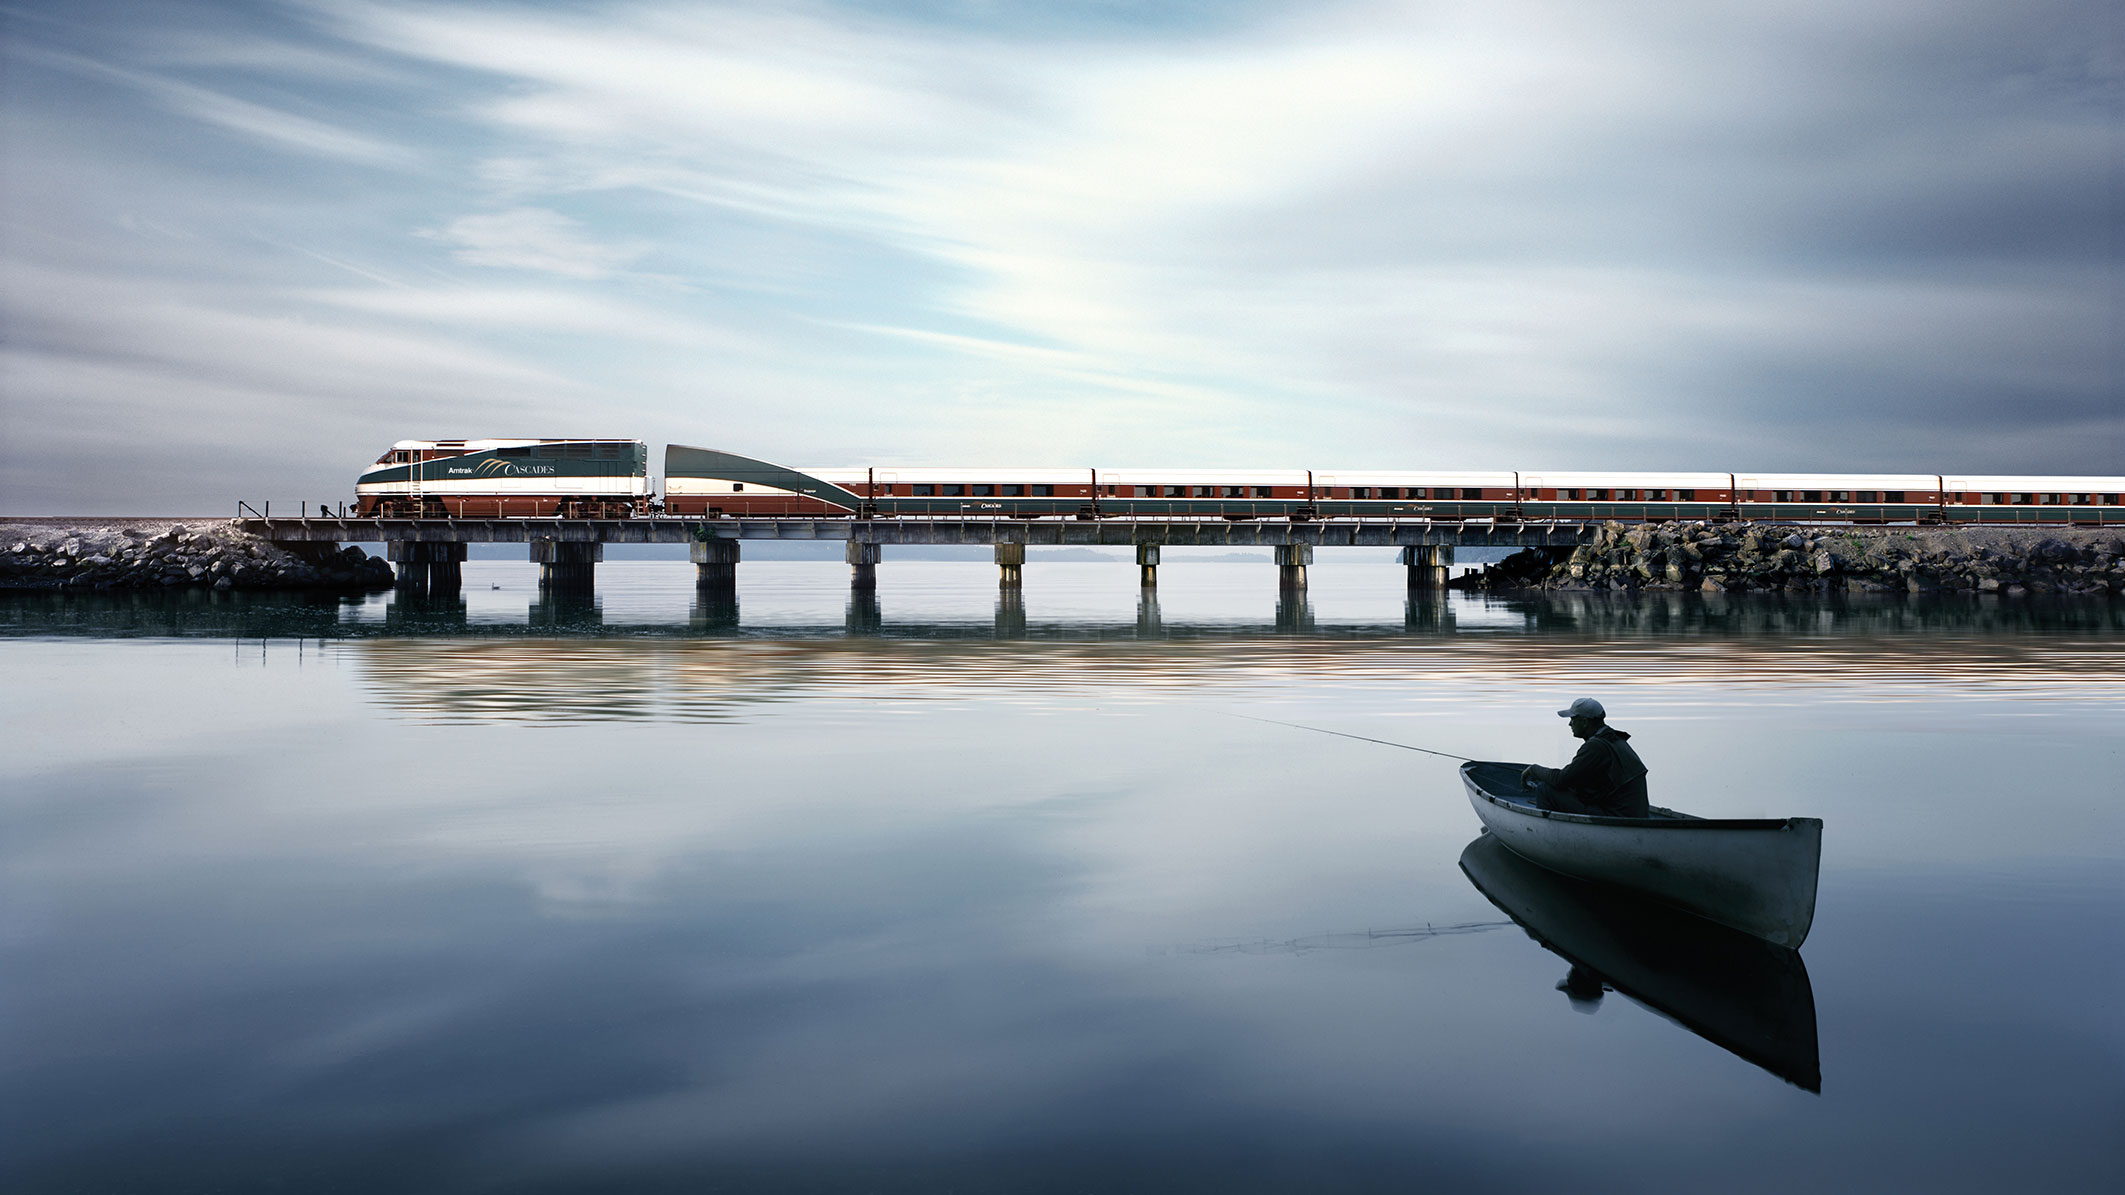 Amtrak Cascades Train Route train over water on a bridge with a man in a boat looking on